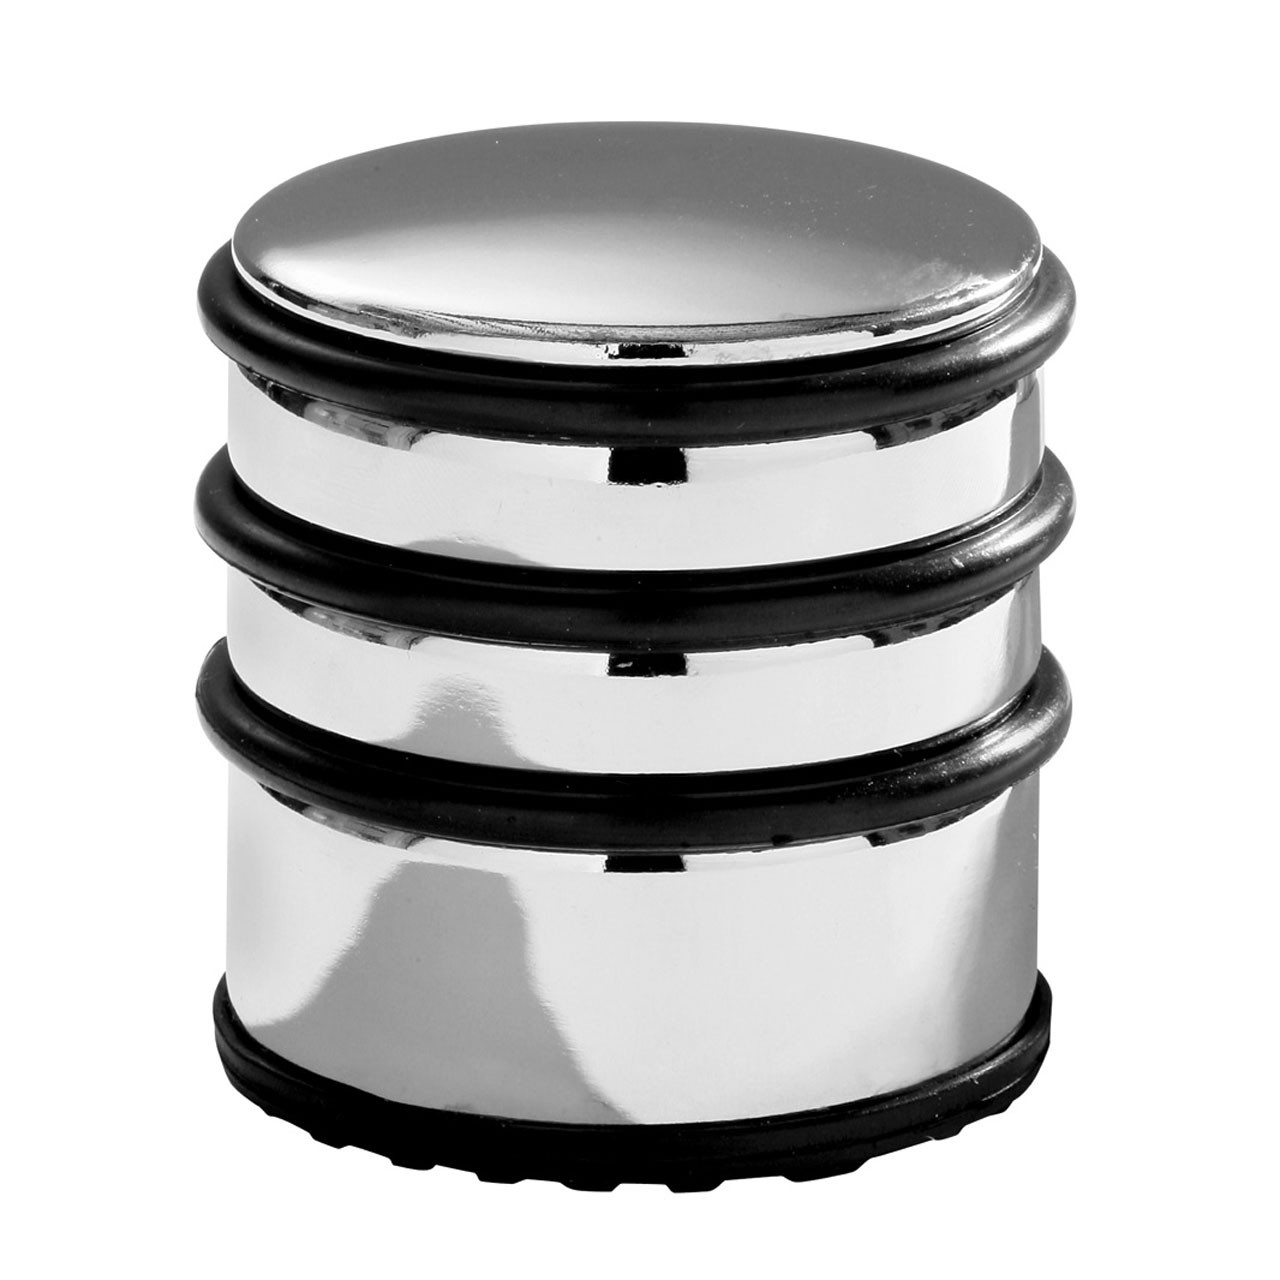 Prime Furnishing Chrome Door Stop with Black Rubber Rings